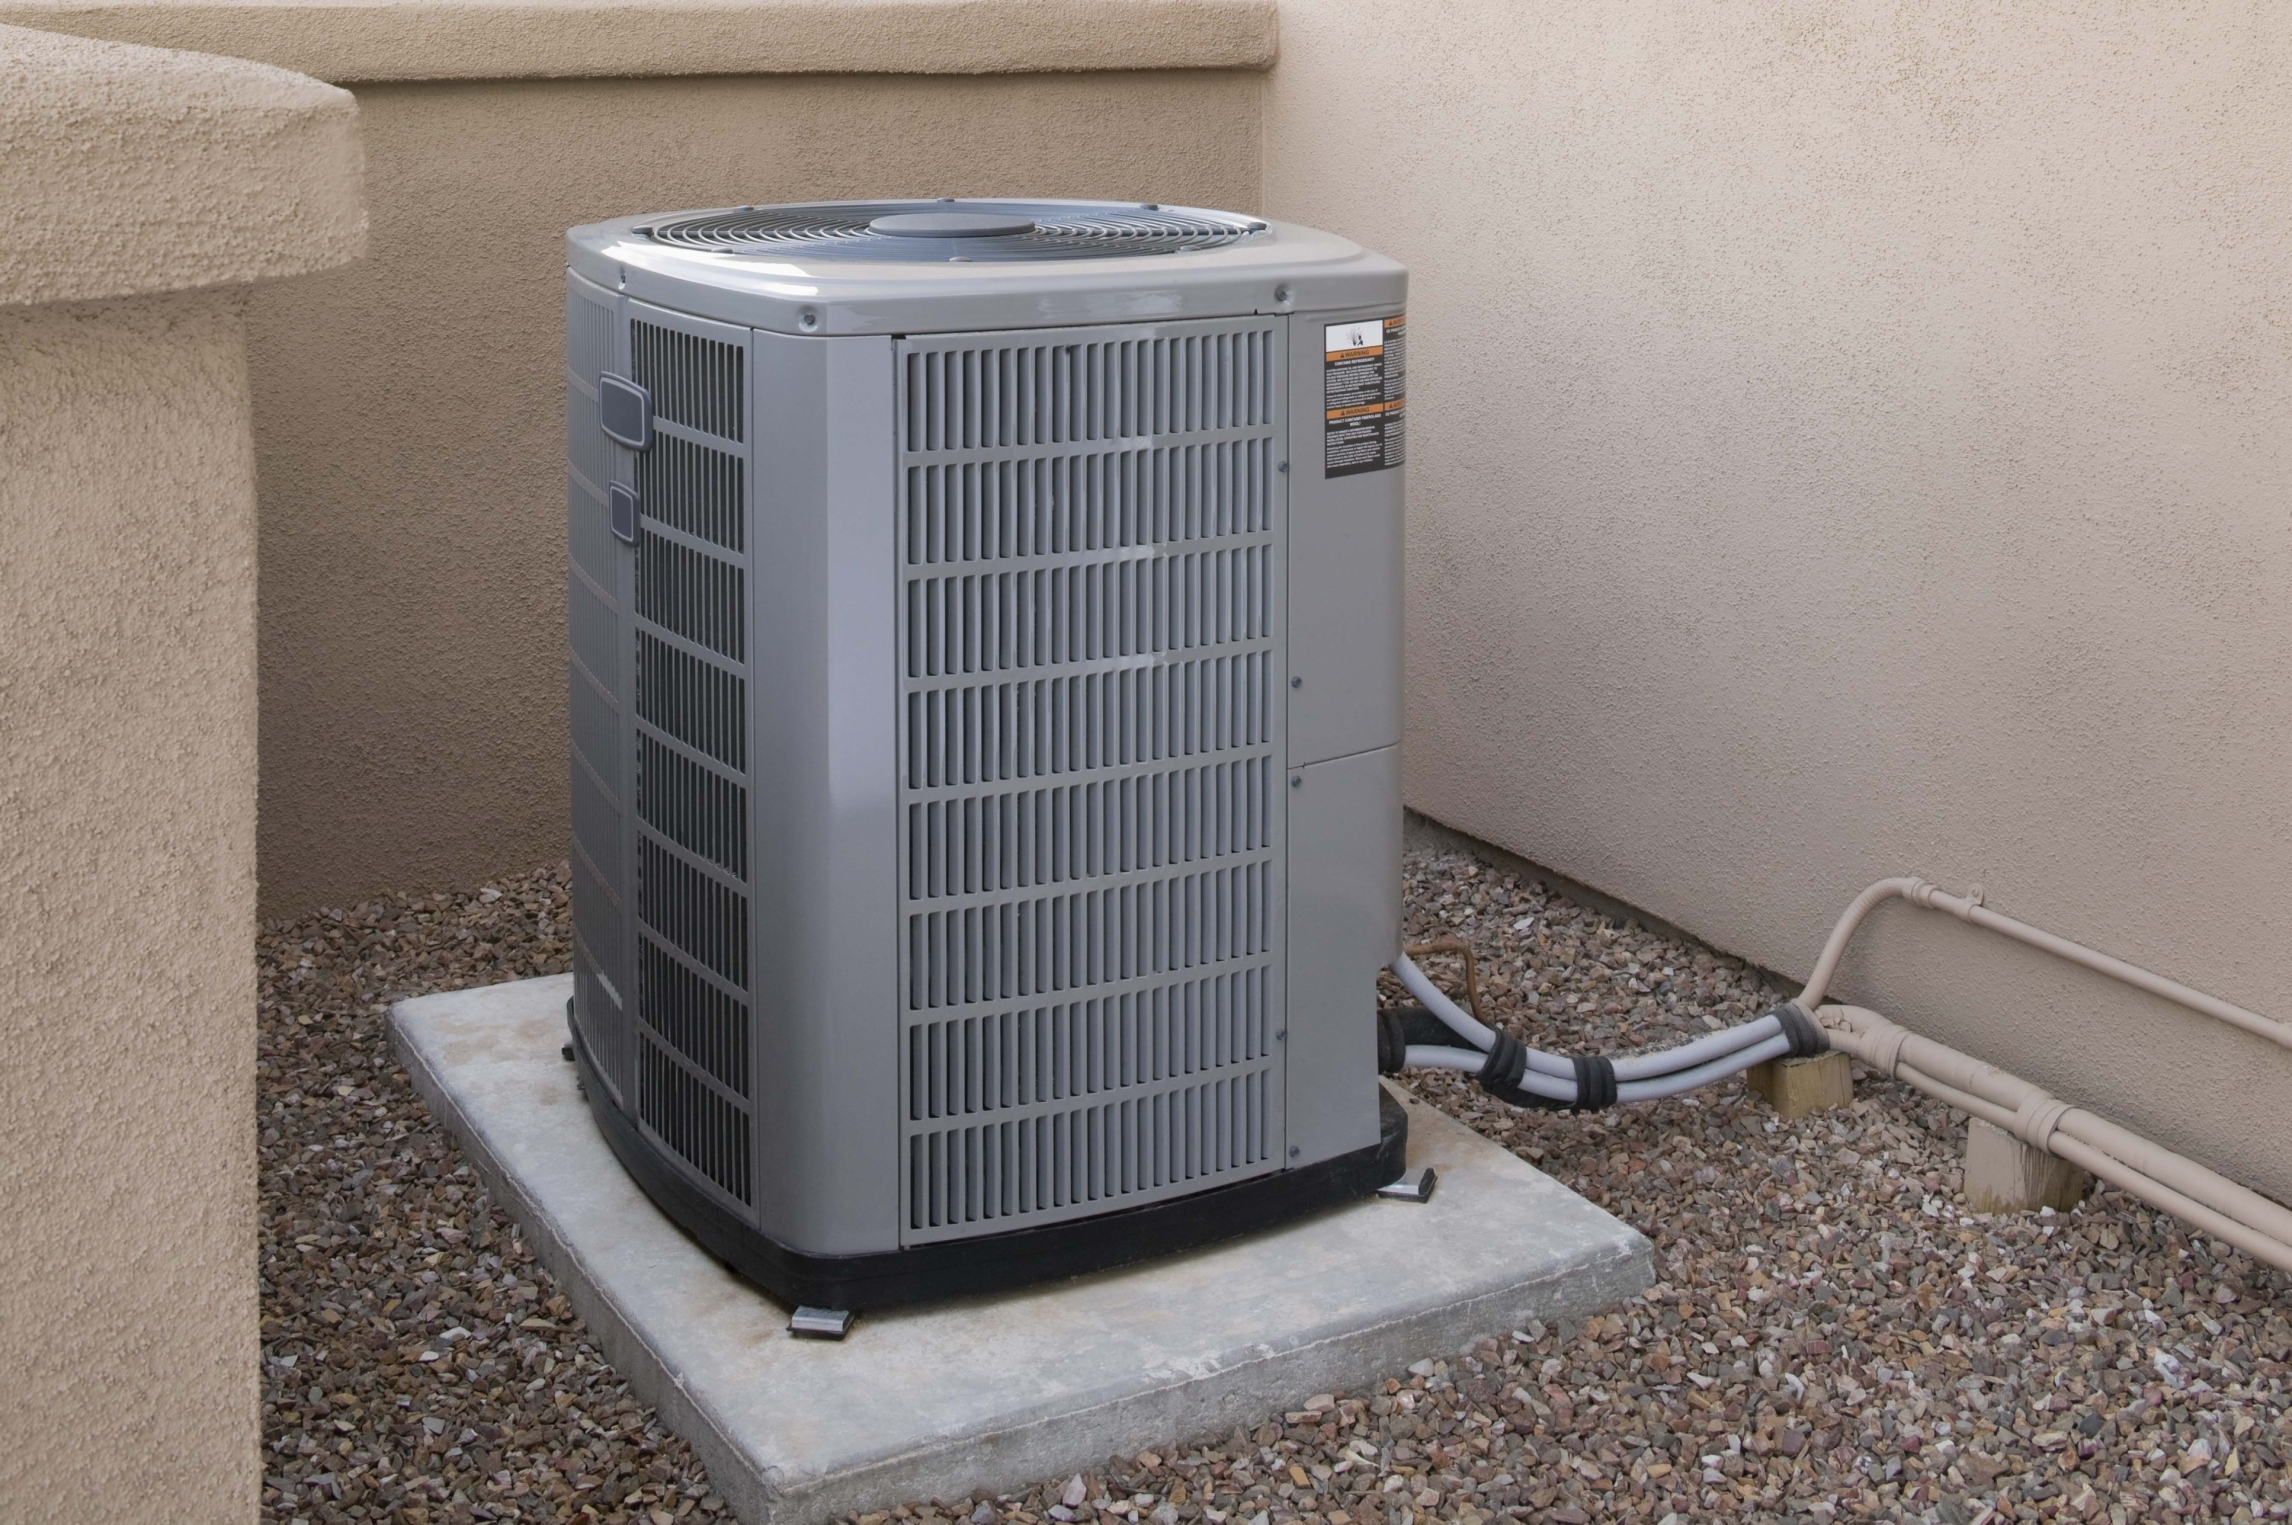 problems with two-stage air conditioners | home guides | sf gate